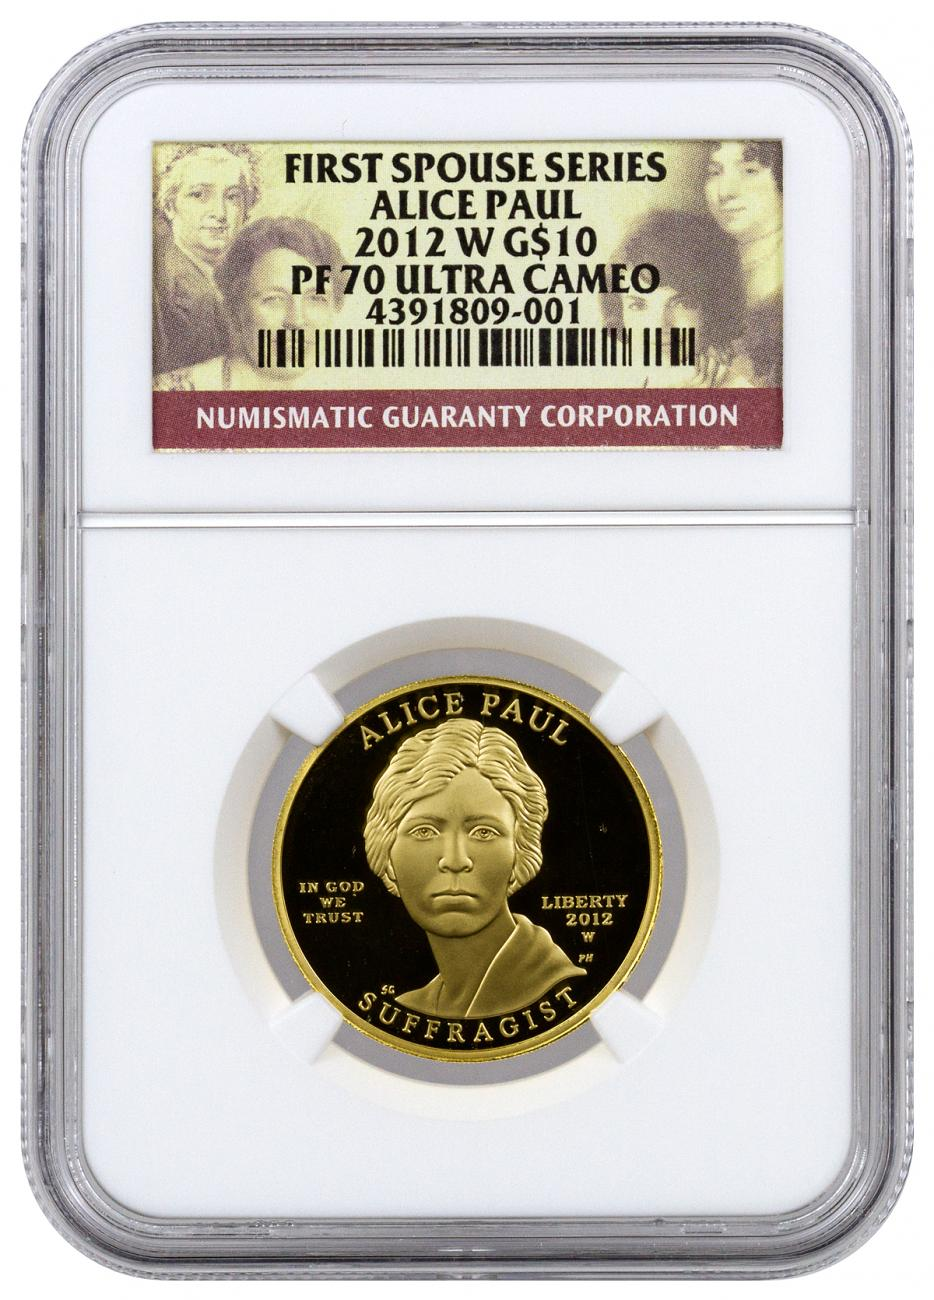 2012-W $10 1/2 oz. Proof Gold First Spouse - Alice Paul - NGC PF70 UC